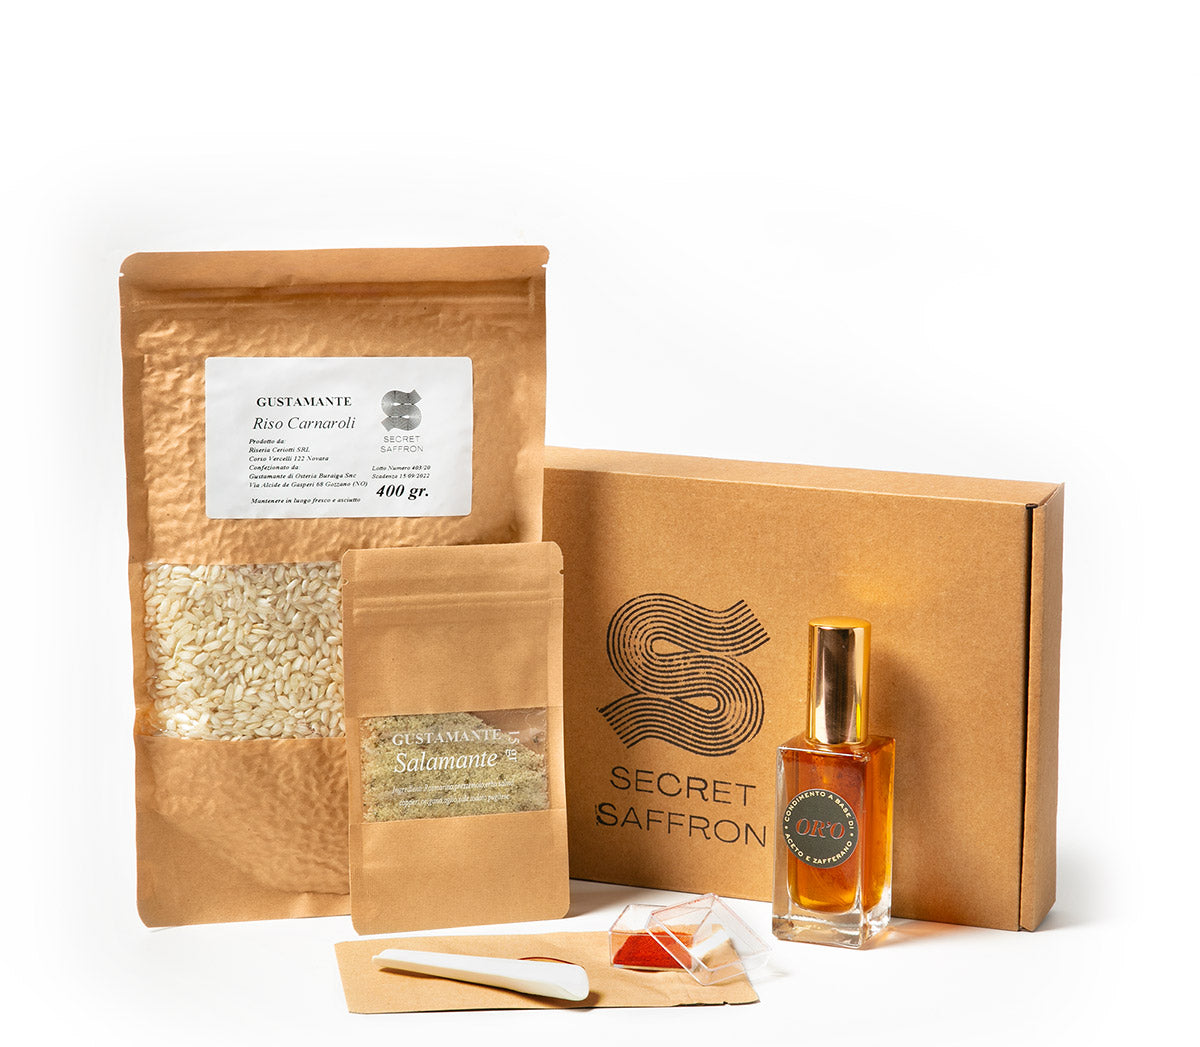 Secret Saffron Box - Kit risotto alla milanese - Fast delivery